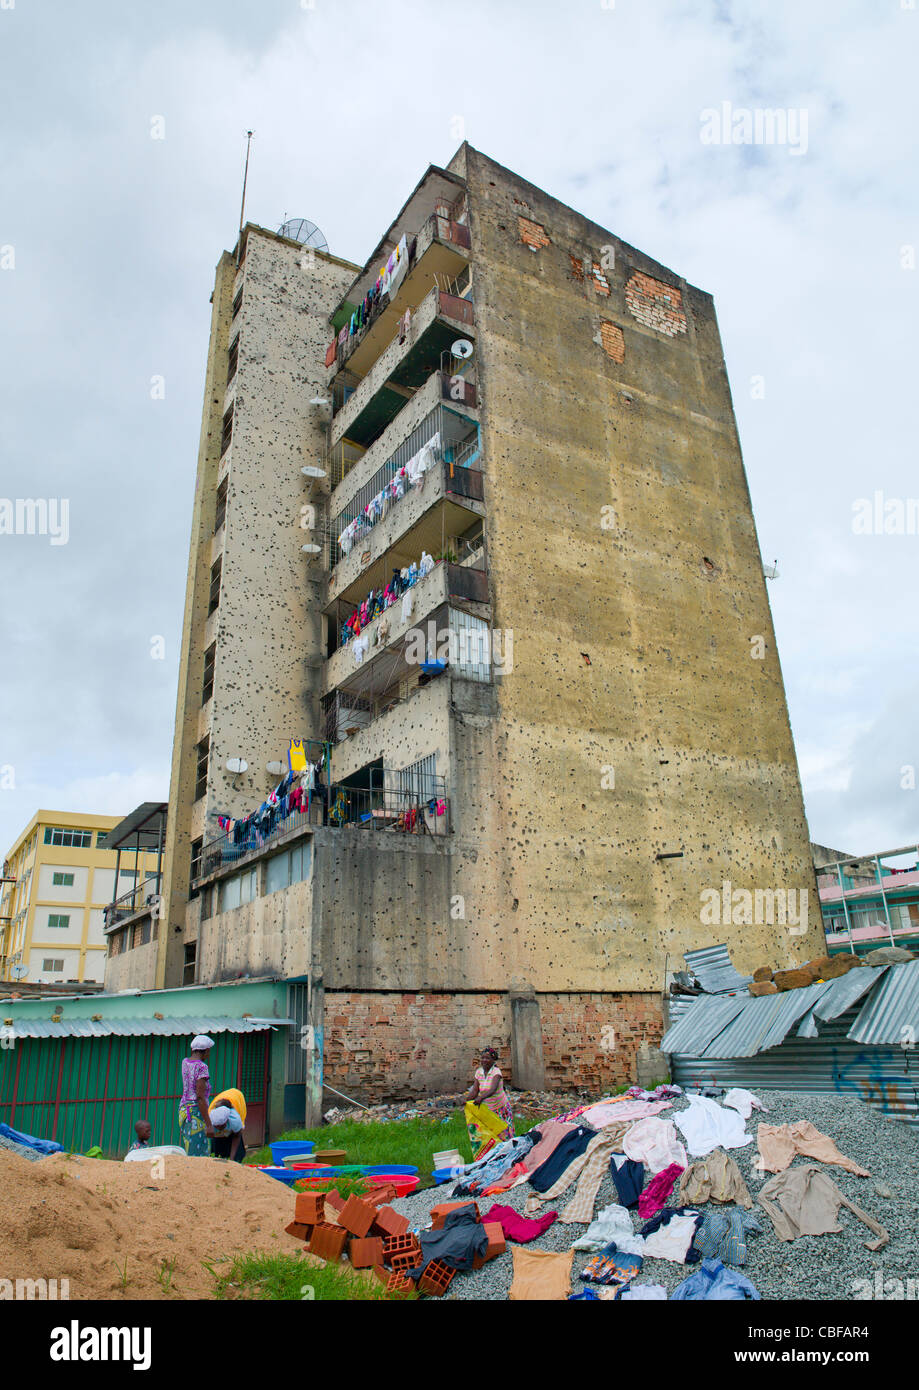 Women Doing Their Laundry At The bottom Of Their Building Riddled With Bullet Impacts From Civil War, Huambo, Angola - Stock Image